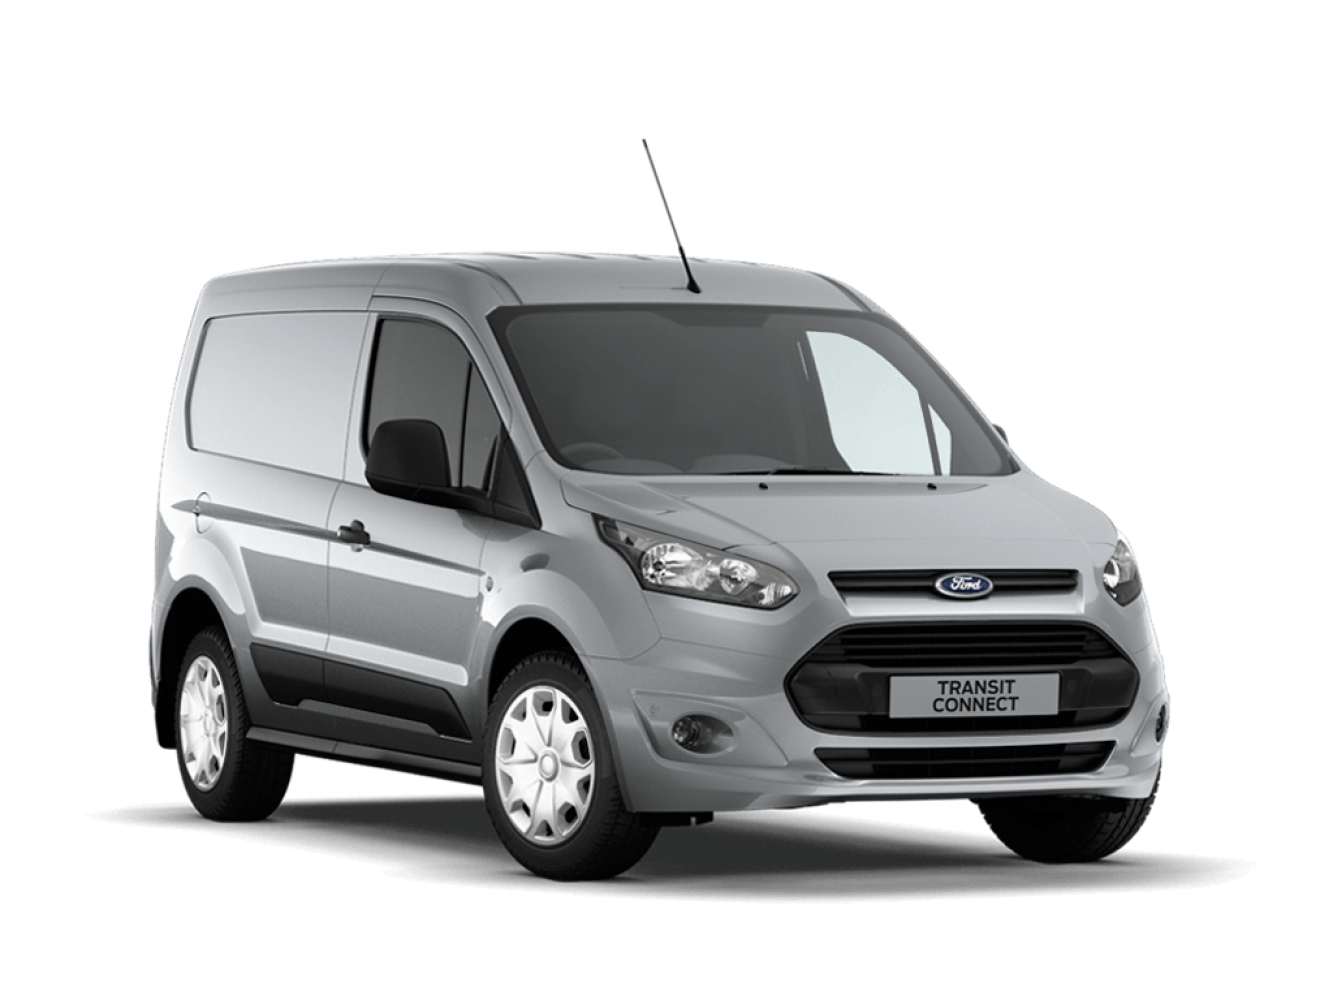 738d2ee9fc New Ford Transit Connect 230 L2 Diesel 1.5 TDCi 100ps Kombi for Sale ...